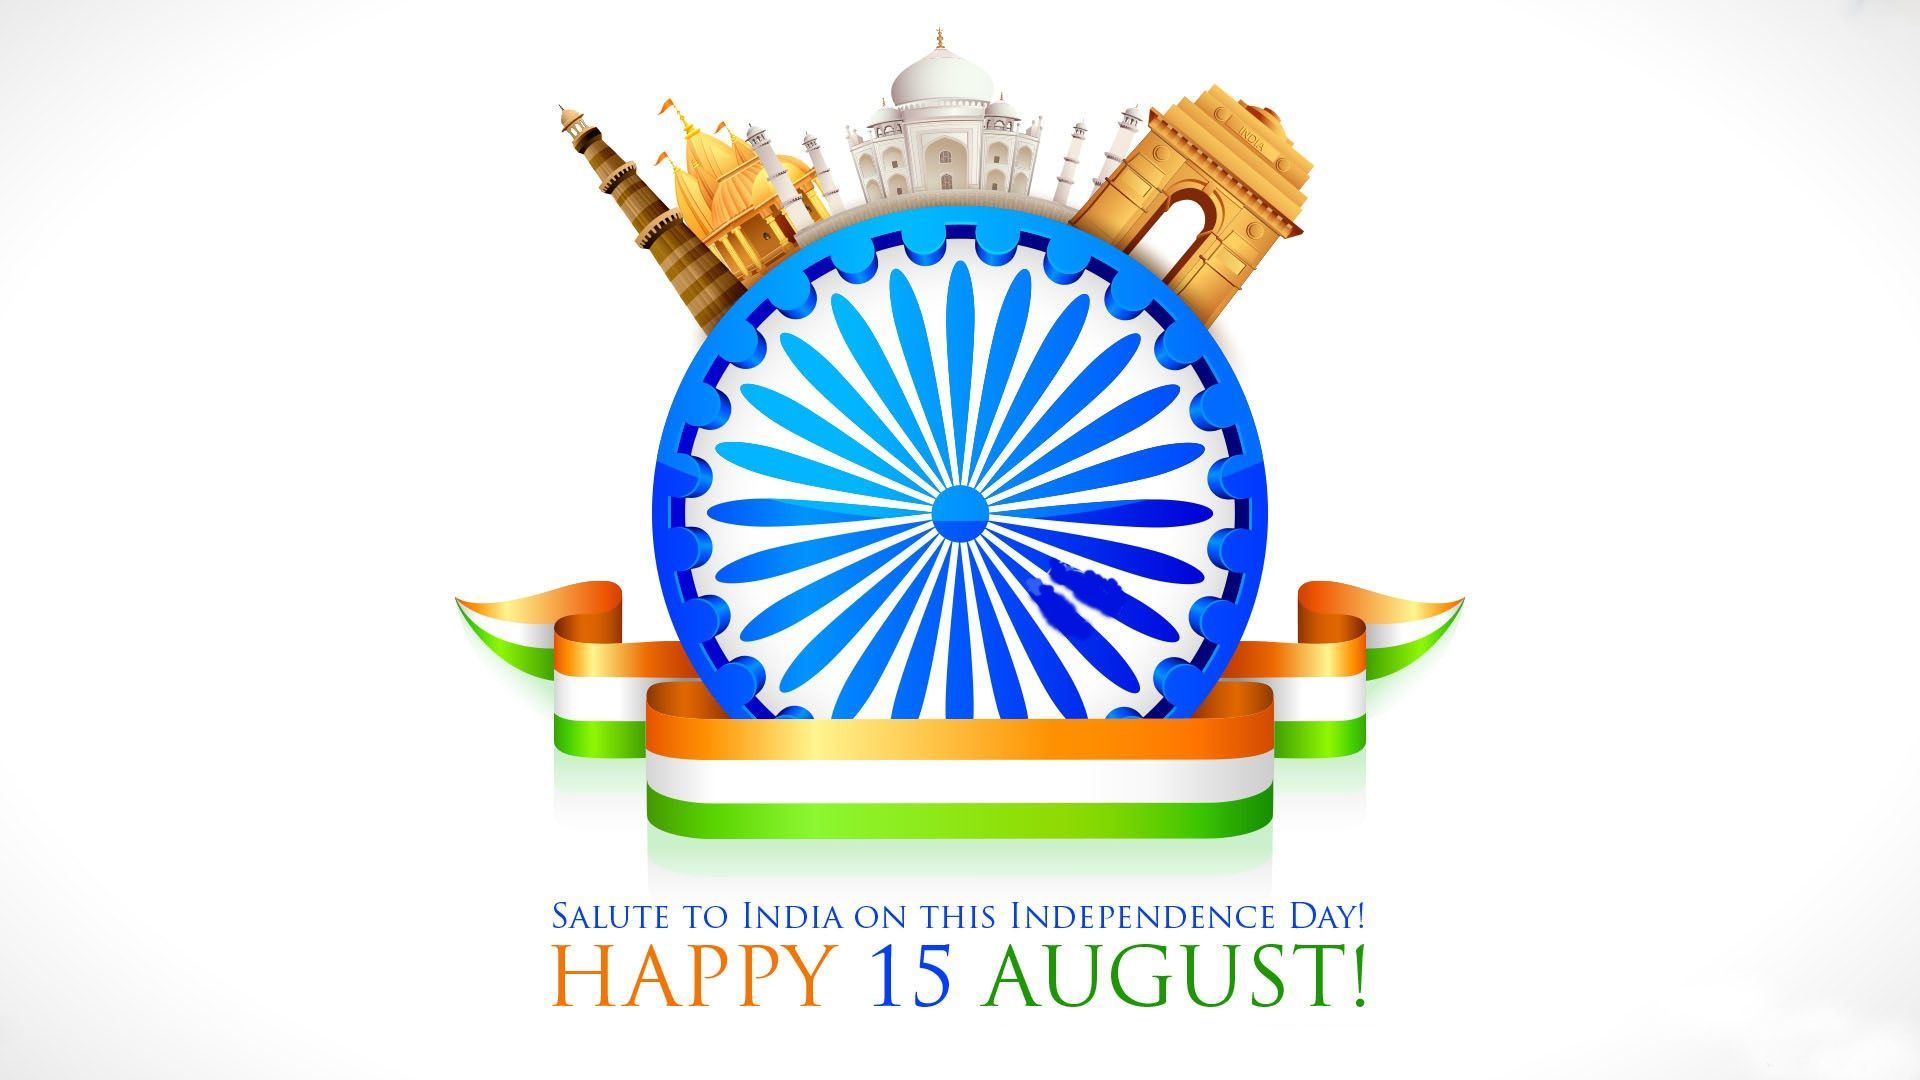 information about republic day of india in sanskrit One-third the area of the united states, the republic of india occupies most of the subcontinent of india in southern asia it borders on china in the northeast other neighbors are pakistan on the west, nepal and bhutan on the north, and burma and bangladesh on the east.